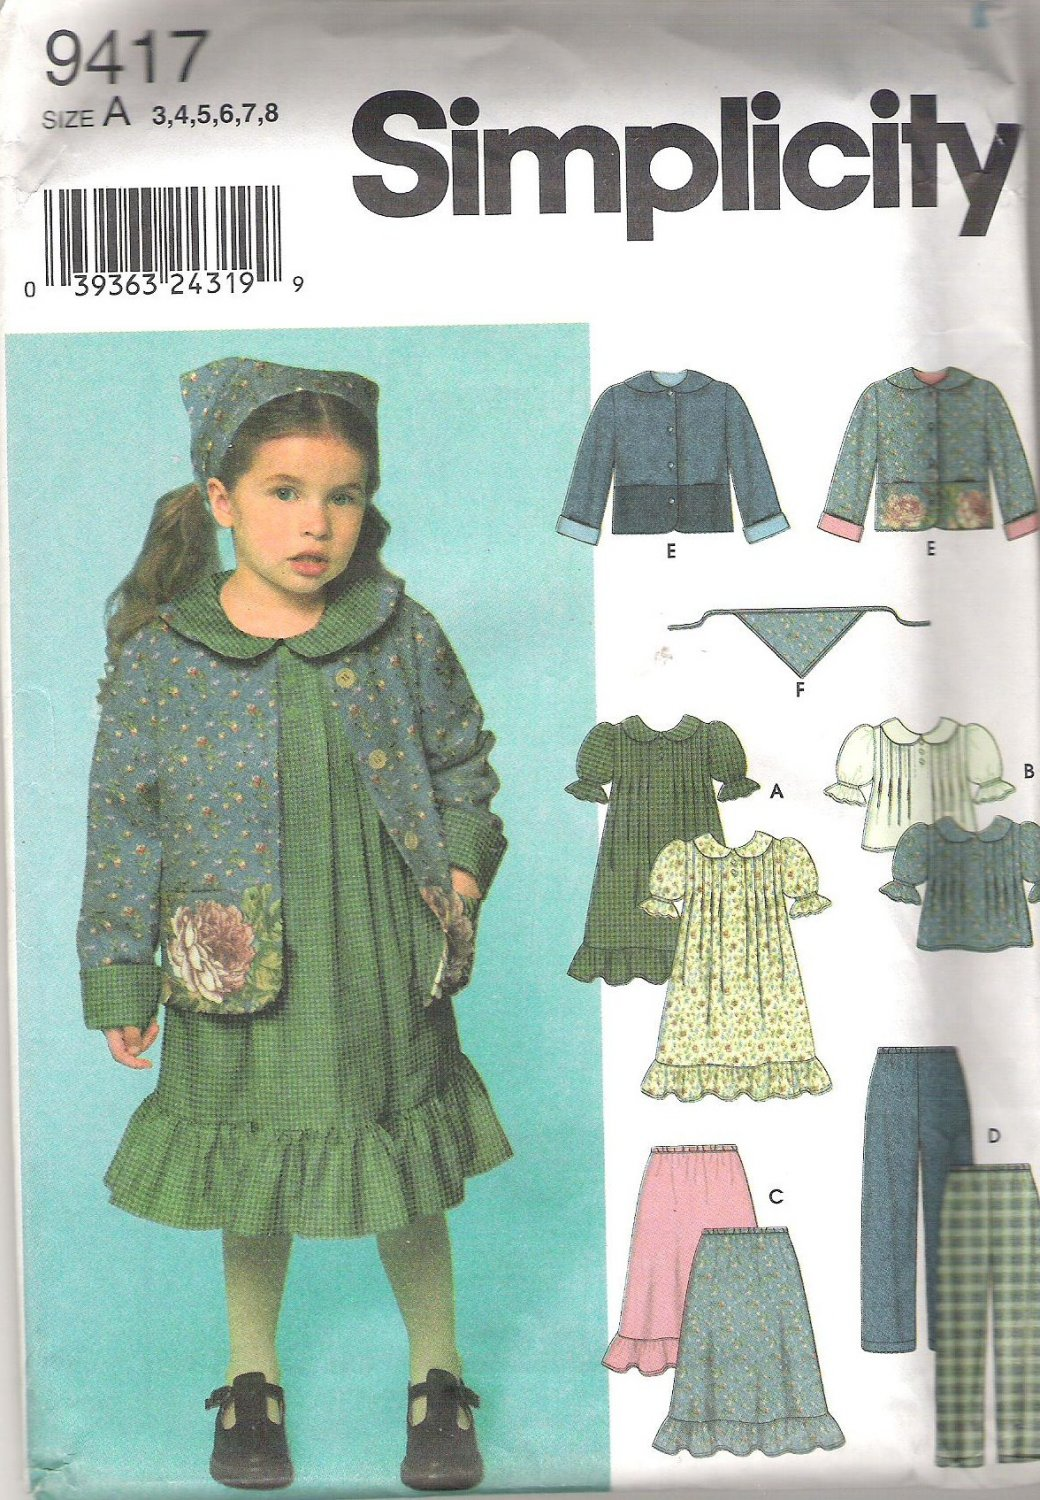 2000 Simplicity 9417 Pattern Girls Dress Top Skirt Pants Jacket, Scarf  Size 3-8  Part Cut to 8